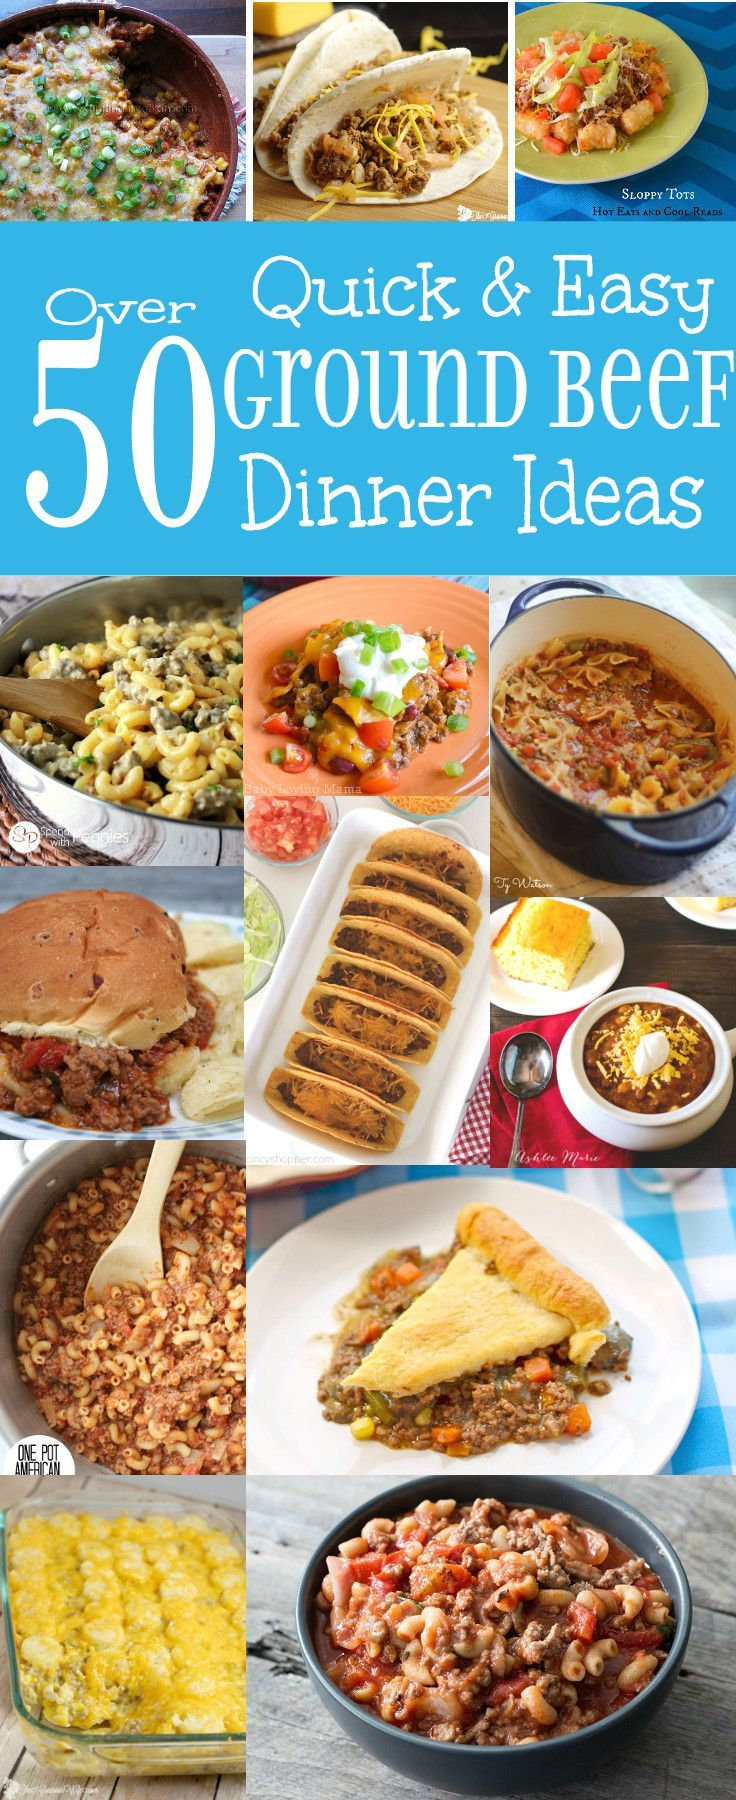 Quick and easy family friendly dinner ideas using ground for Different meal ideas for ground beef